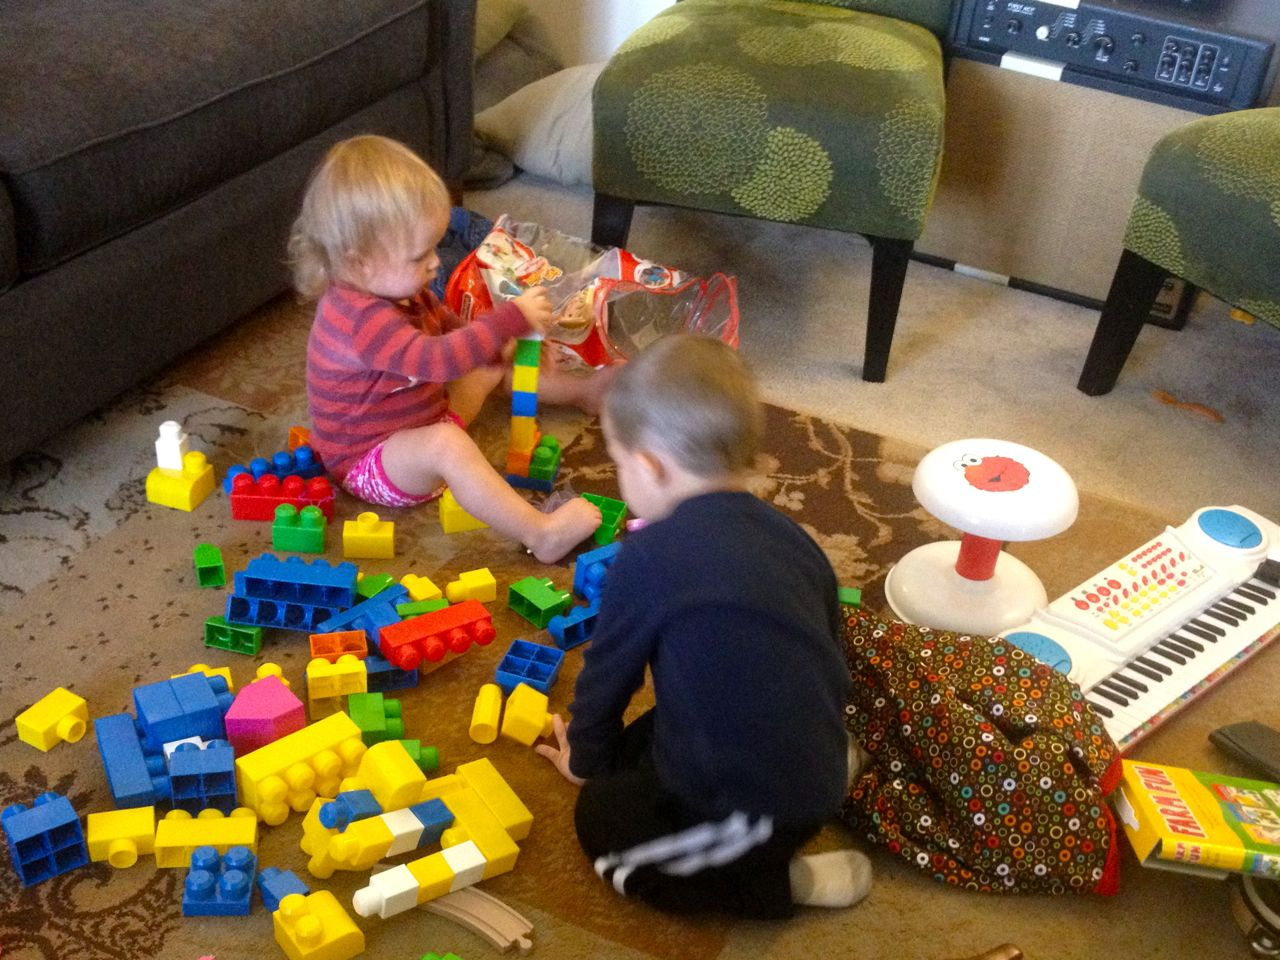 Paisley-playing-legos